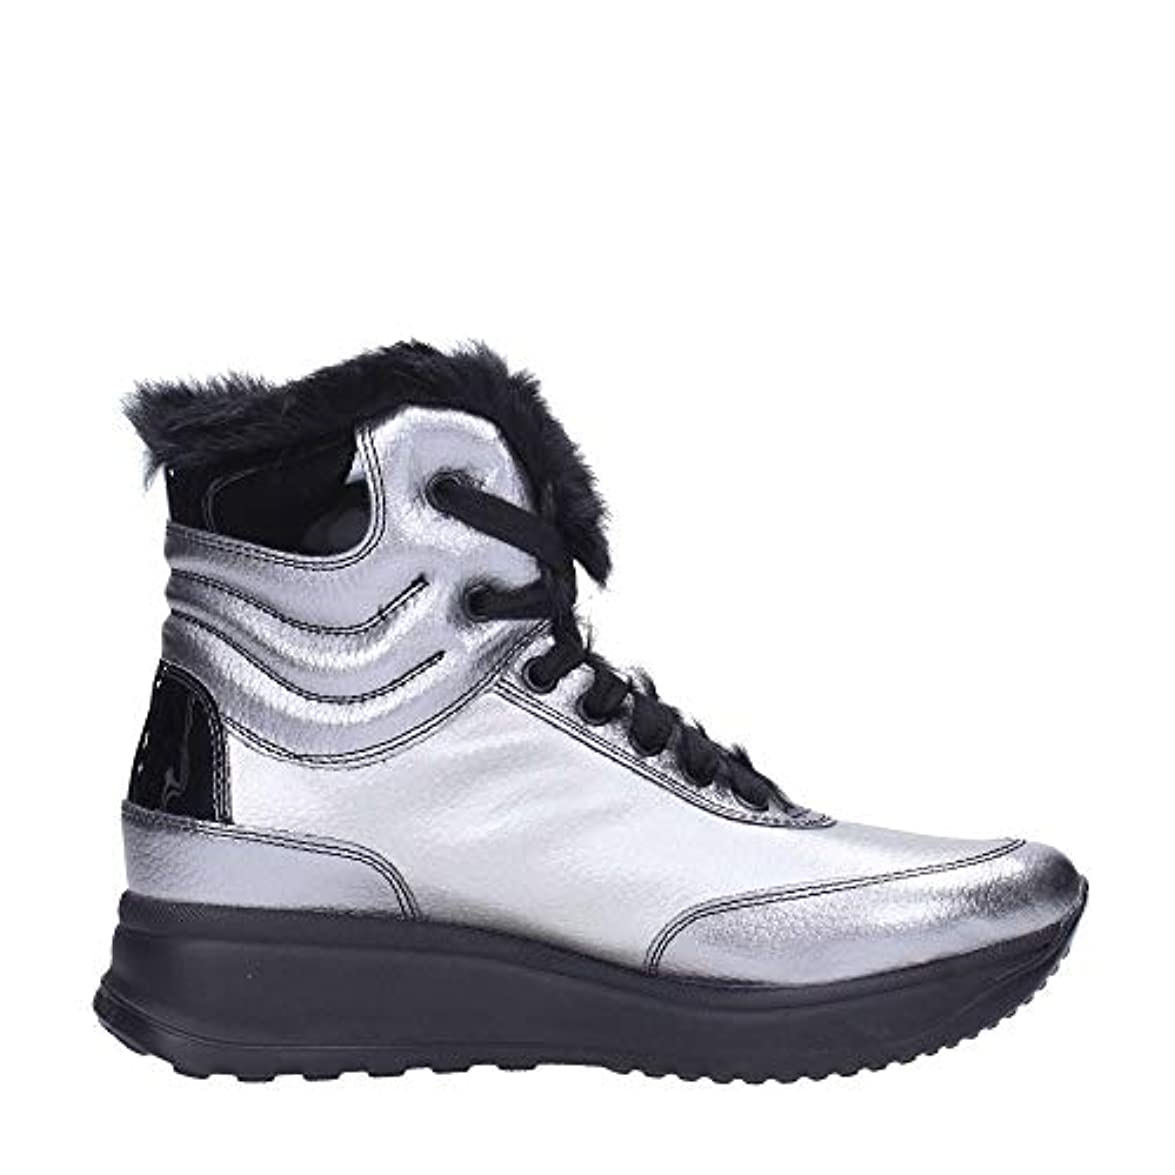 Rucoline 1308-83558 Sneakers Donna